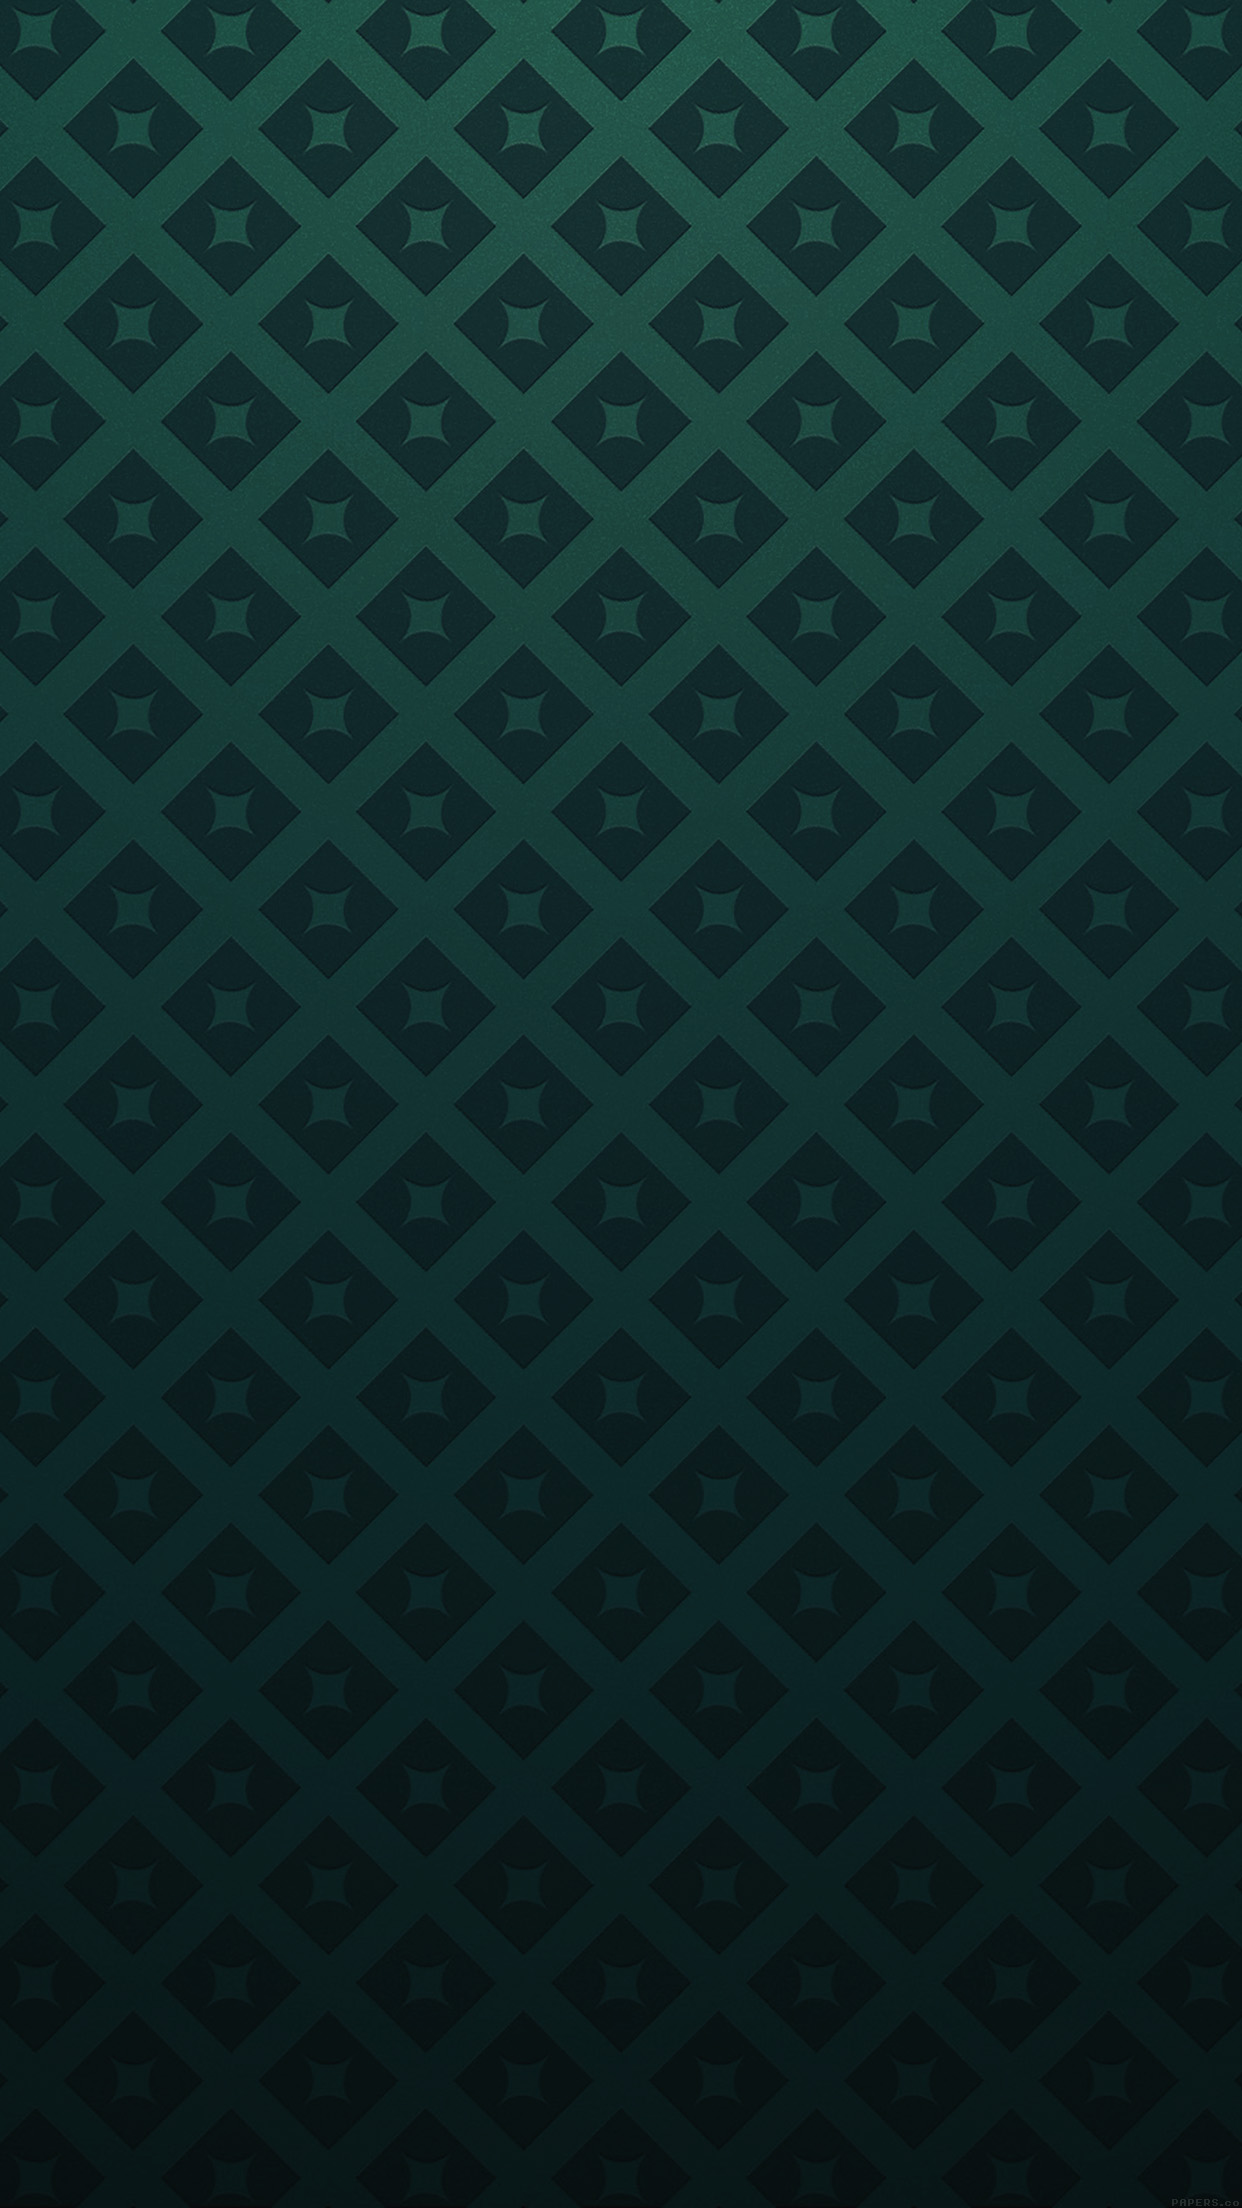 patterns art green digital abstract wall android wallpaper - android